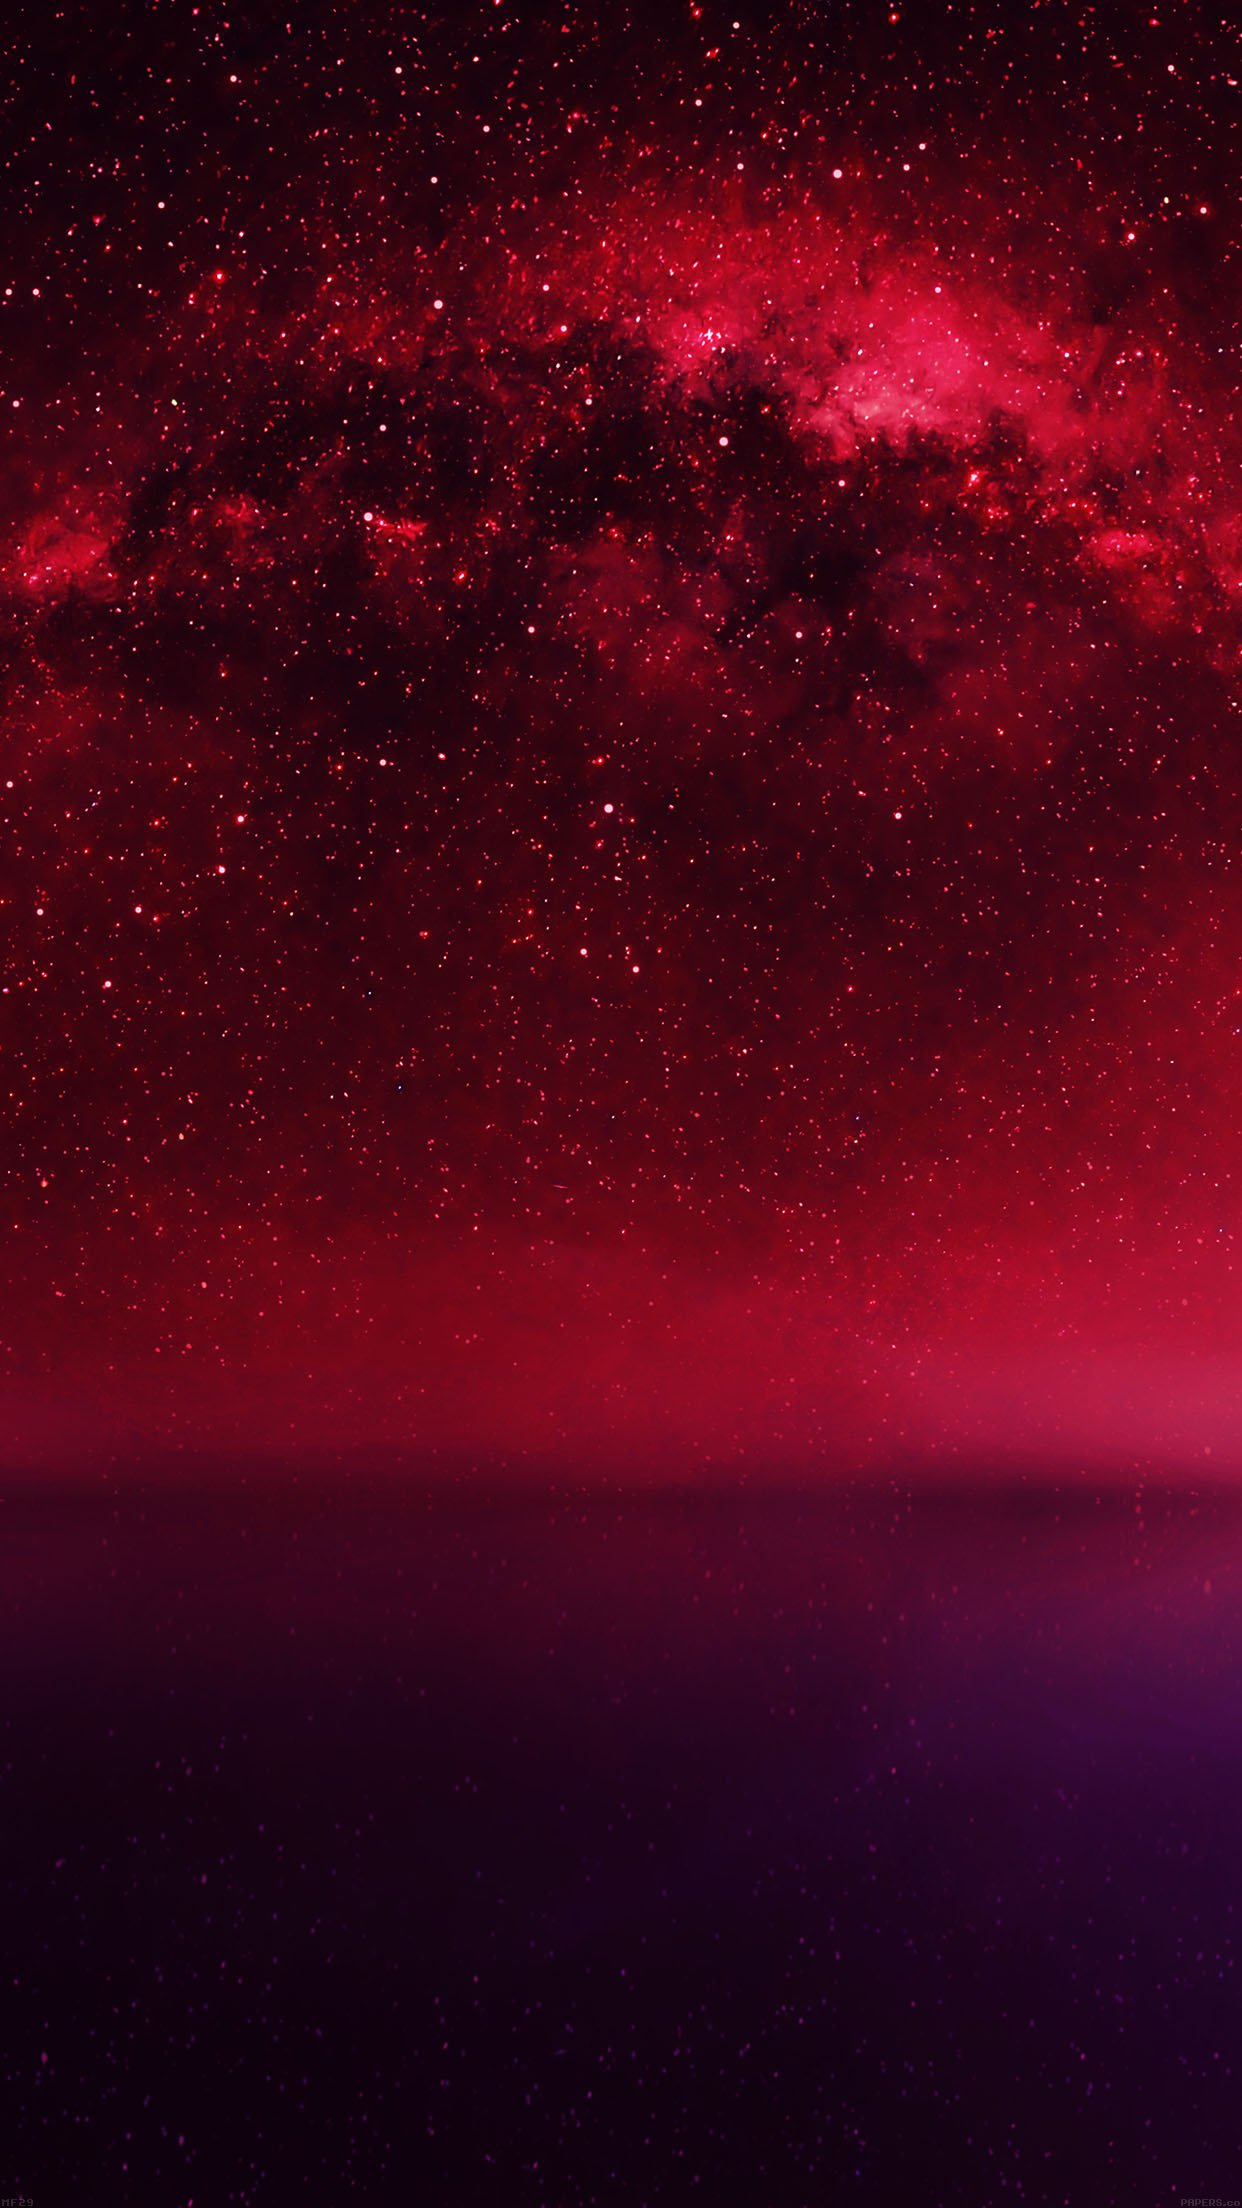 Cosmos Red Night Live Lake Space Starry Android Wallpaper